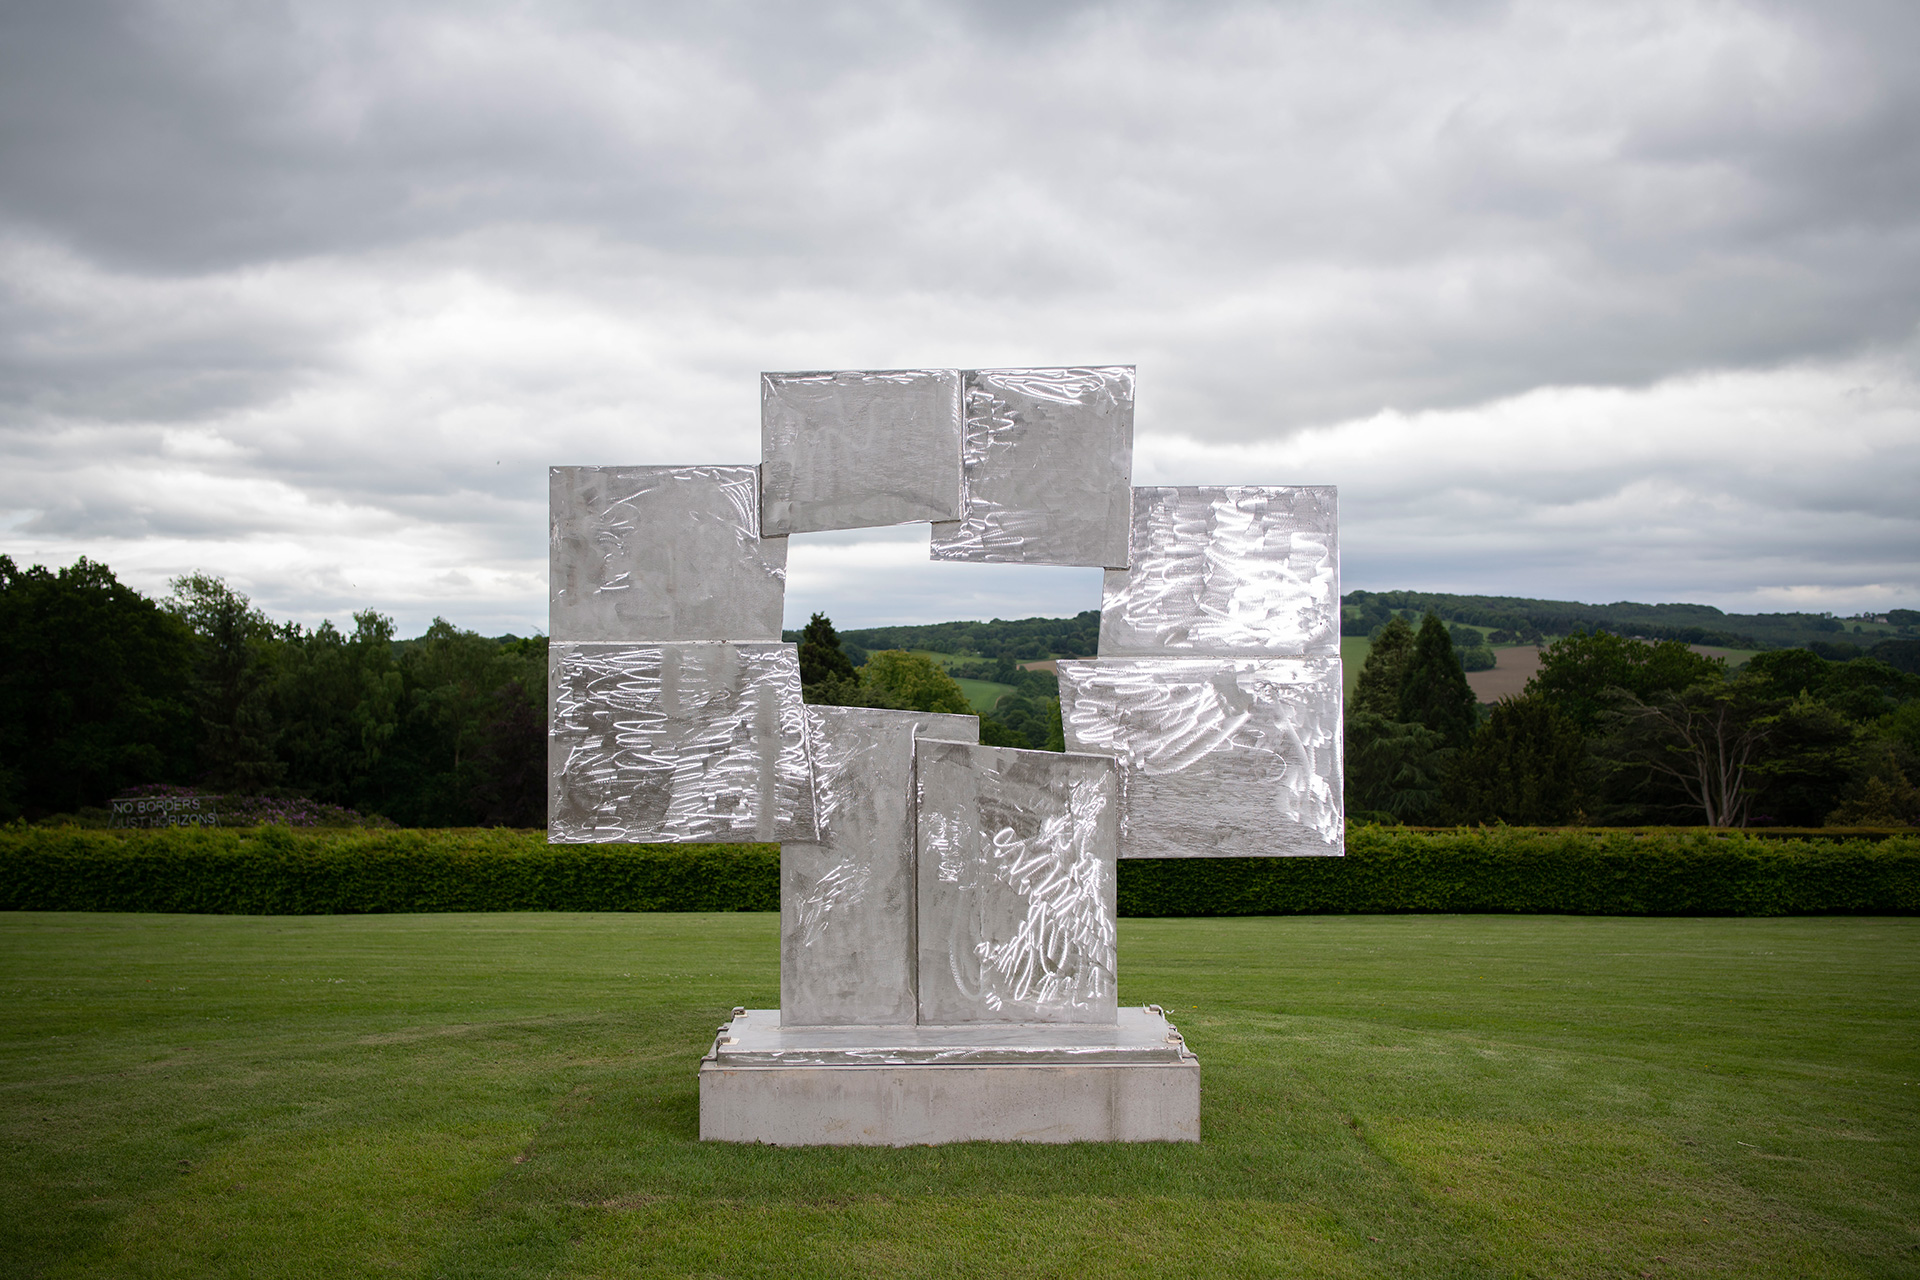 David Smith, Untitled (Candida), 1965. Copyright 2019 The Estate of David Smith, Licensed by VAGA at Artists Rights Society (ARS), NY. Courtesy YSP | Yorkshire Sculpture International| STIR